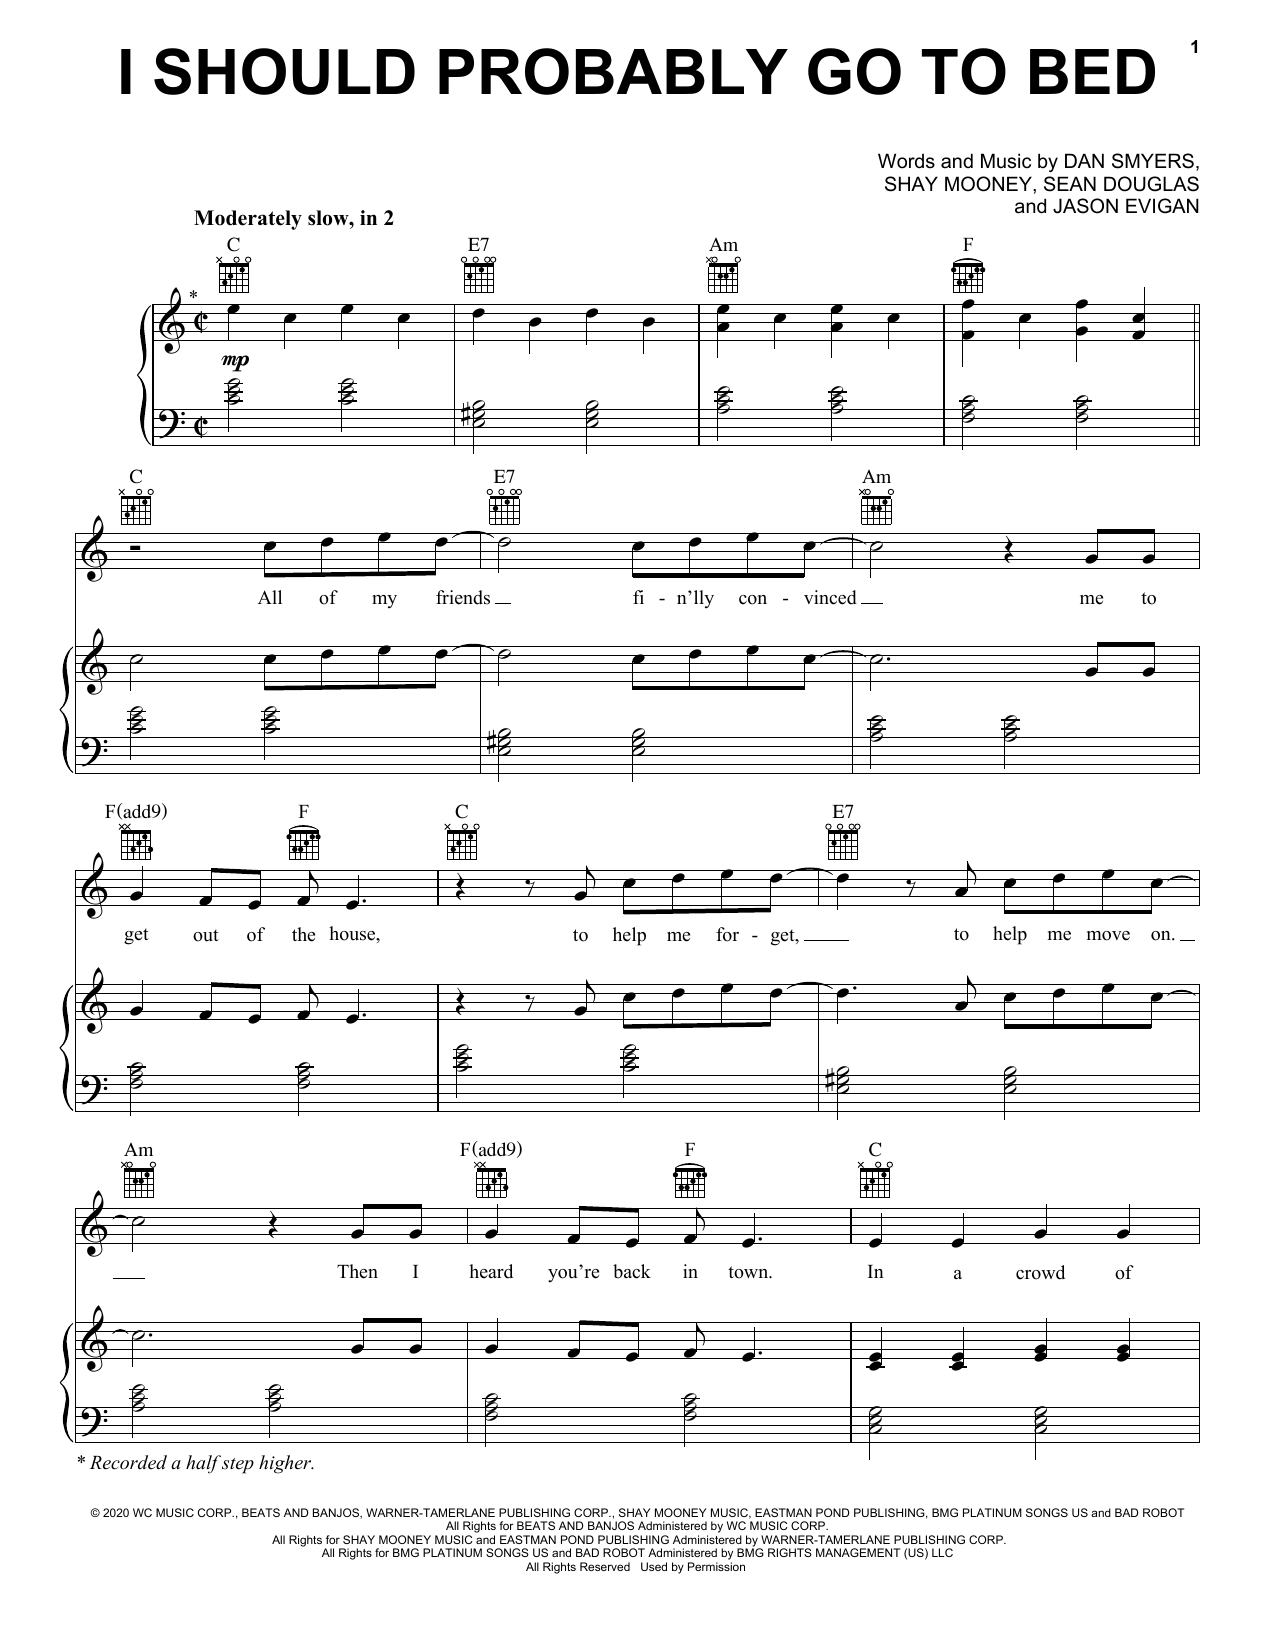 Dan + Shay I Should Probably Go To Bed sheet music notes and chords. Download Printable PDF.